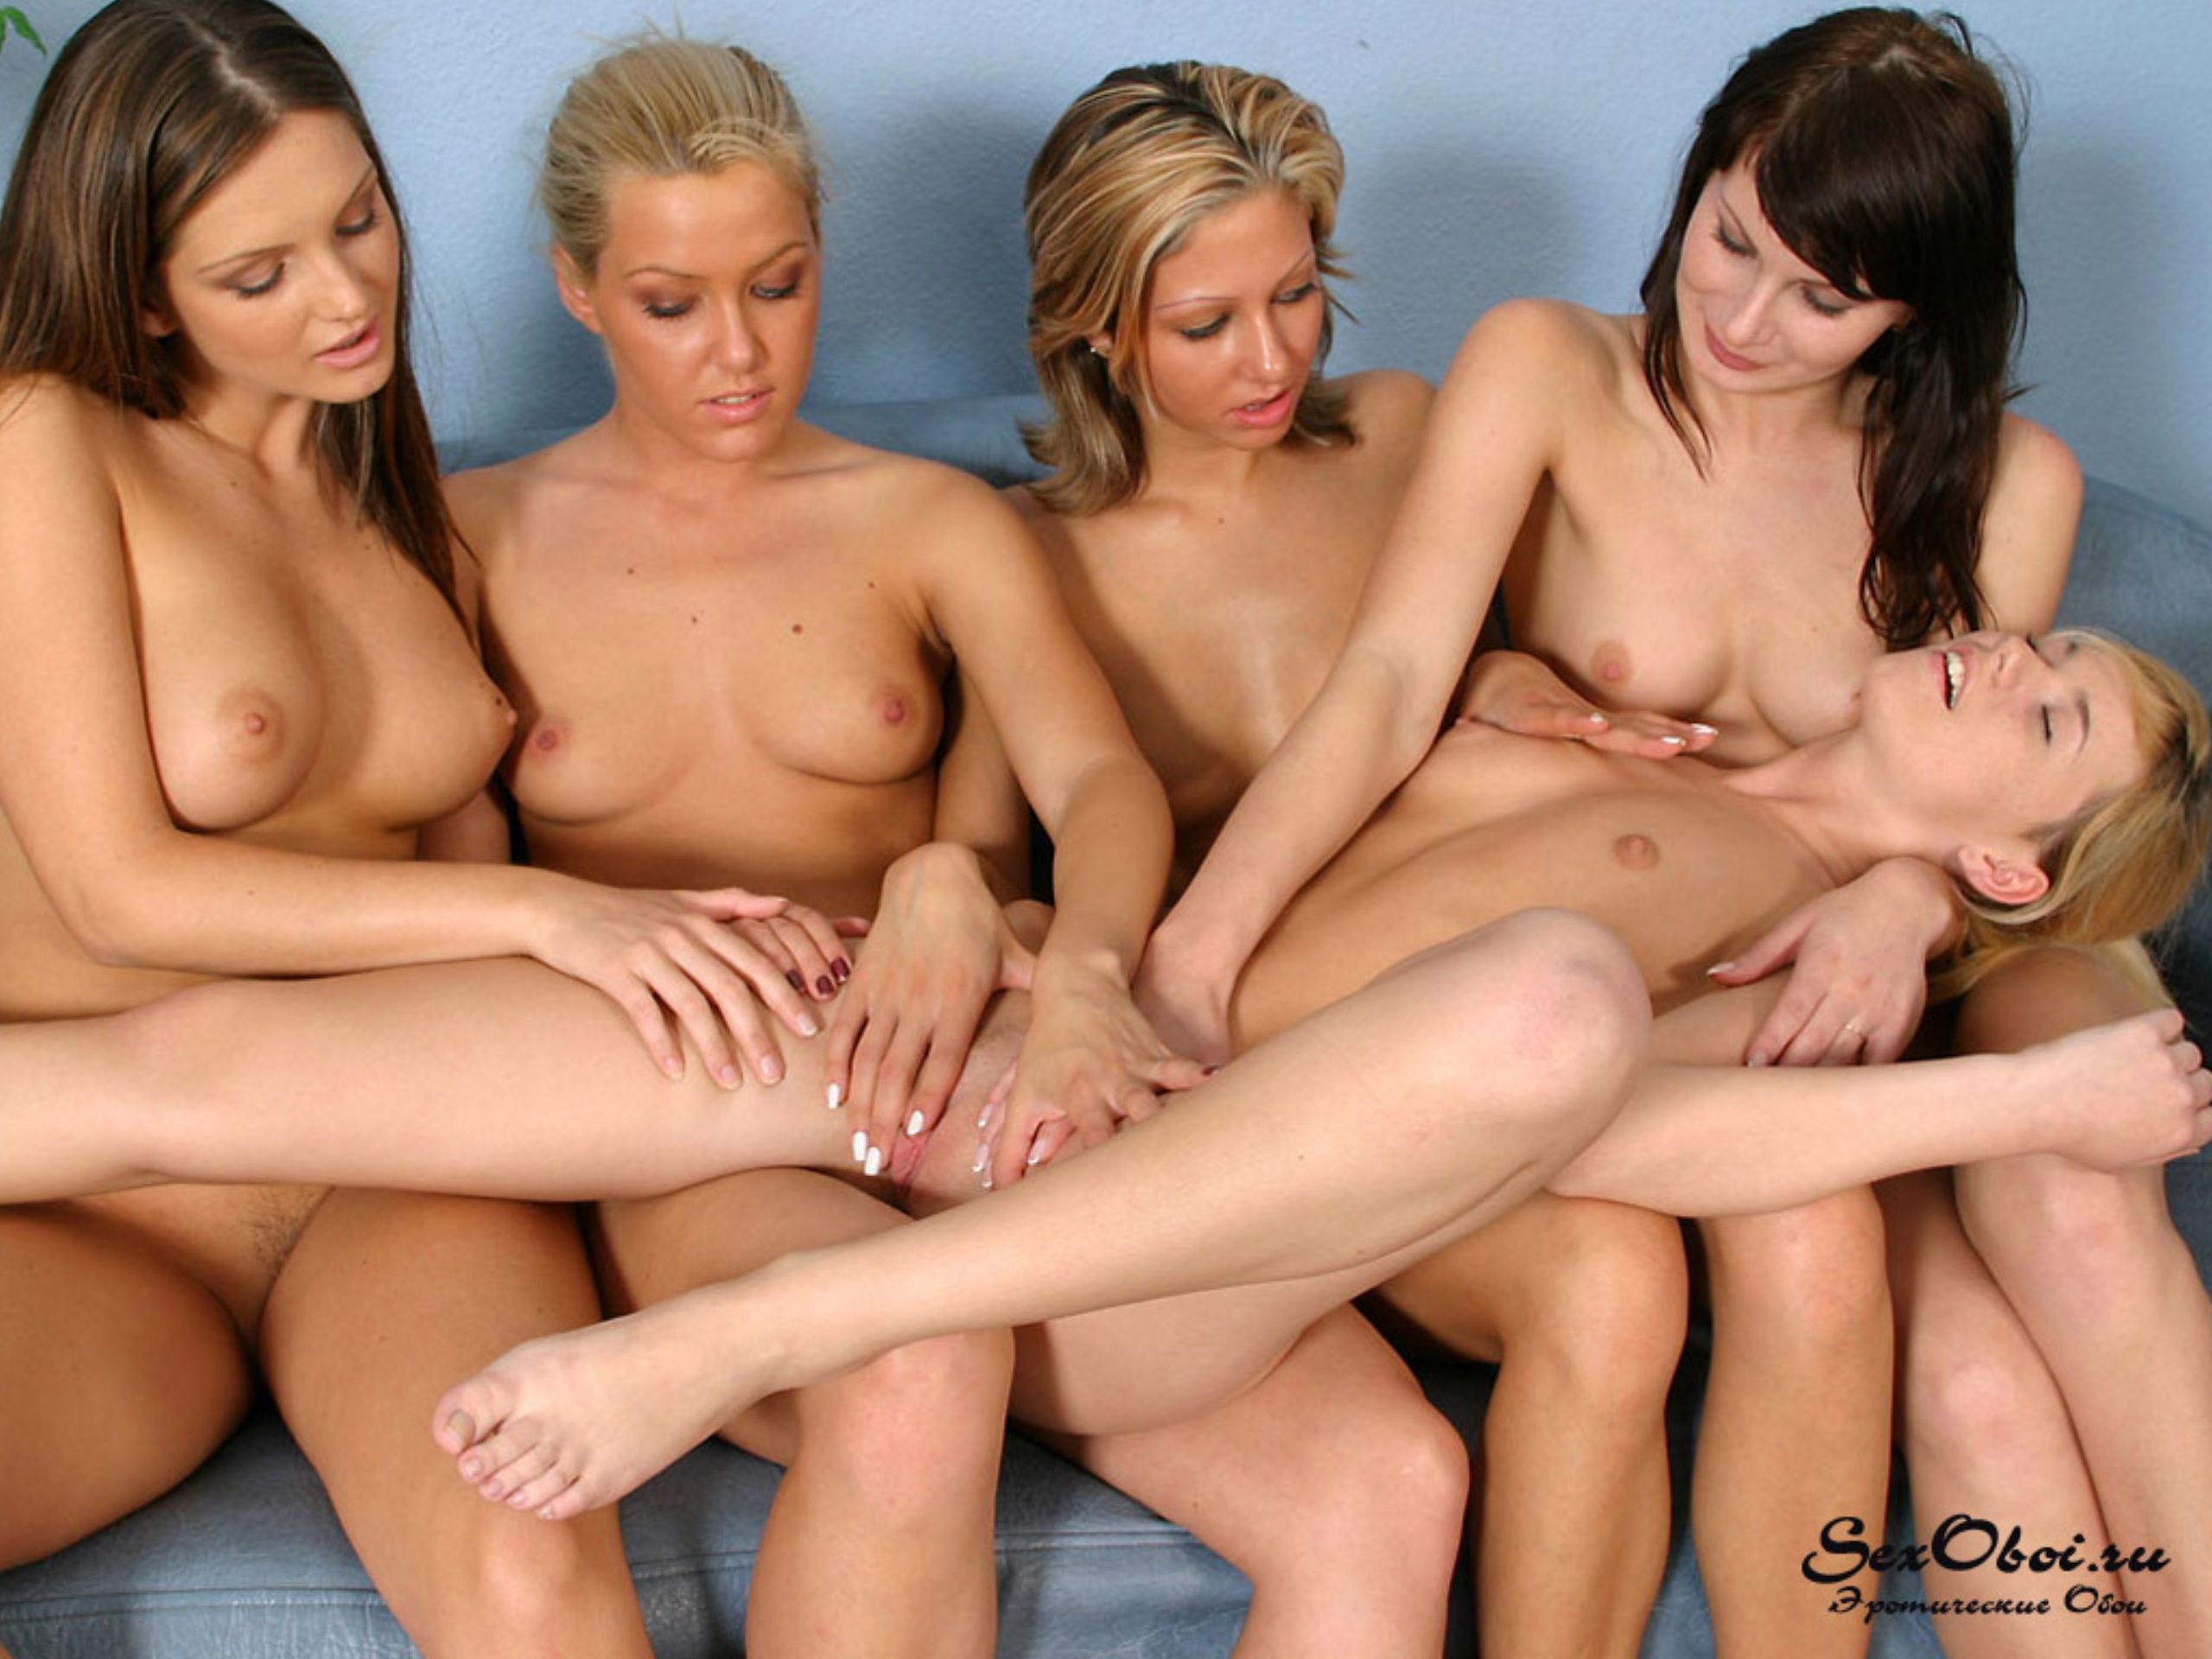 Wallpaper Sophie Moone, Sandra, Electra, Sexy Girl -5519